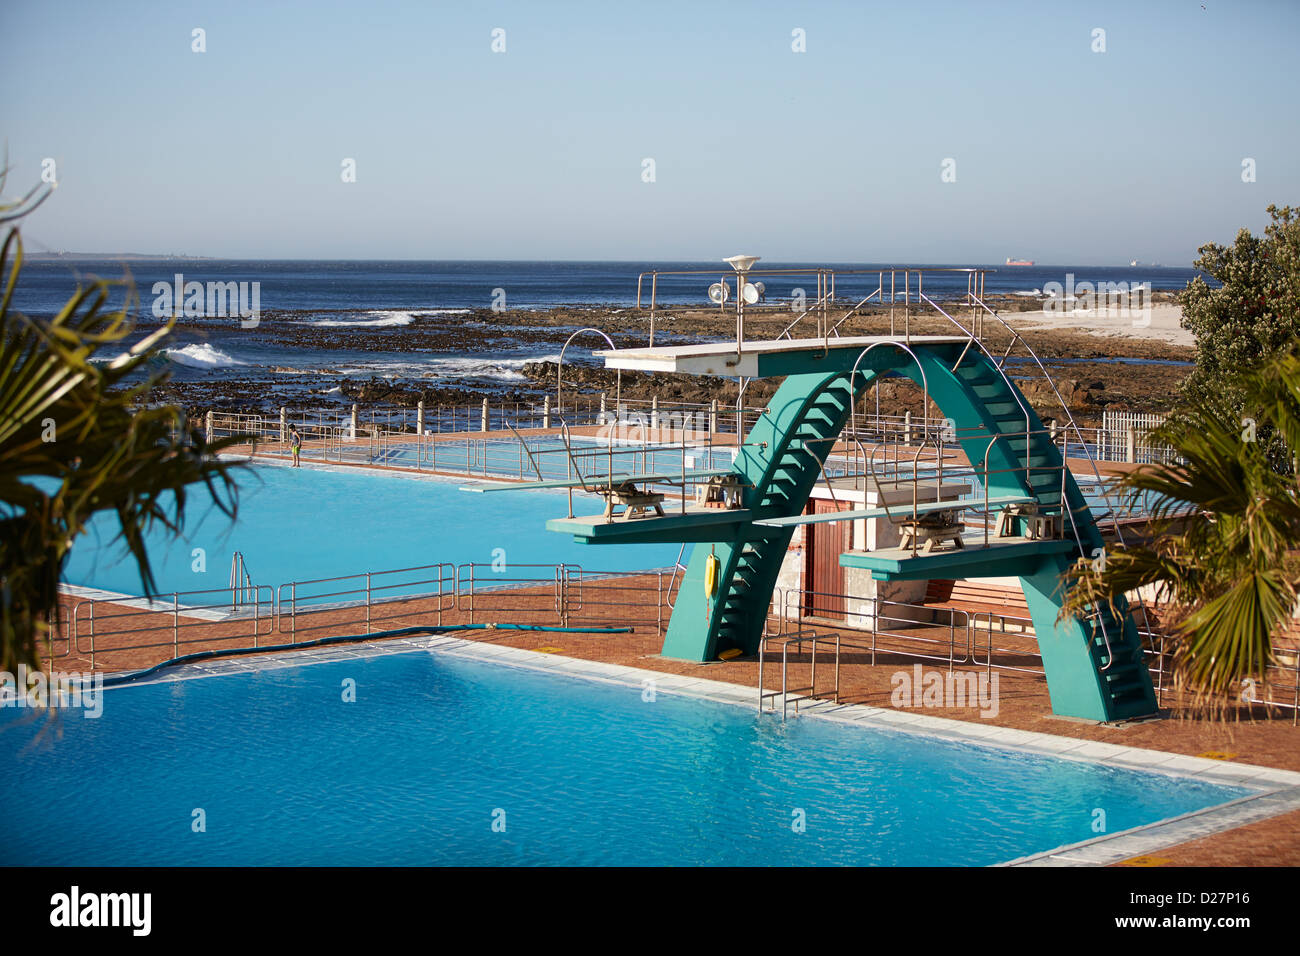 Seapoint Swimming Pool Cape Town South Africa Stock Photo 53031362 Alamy